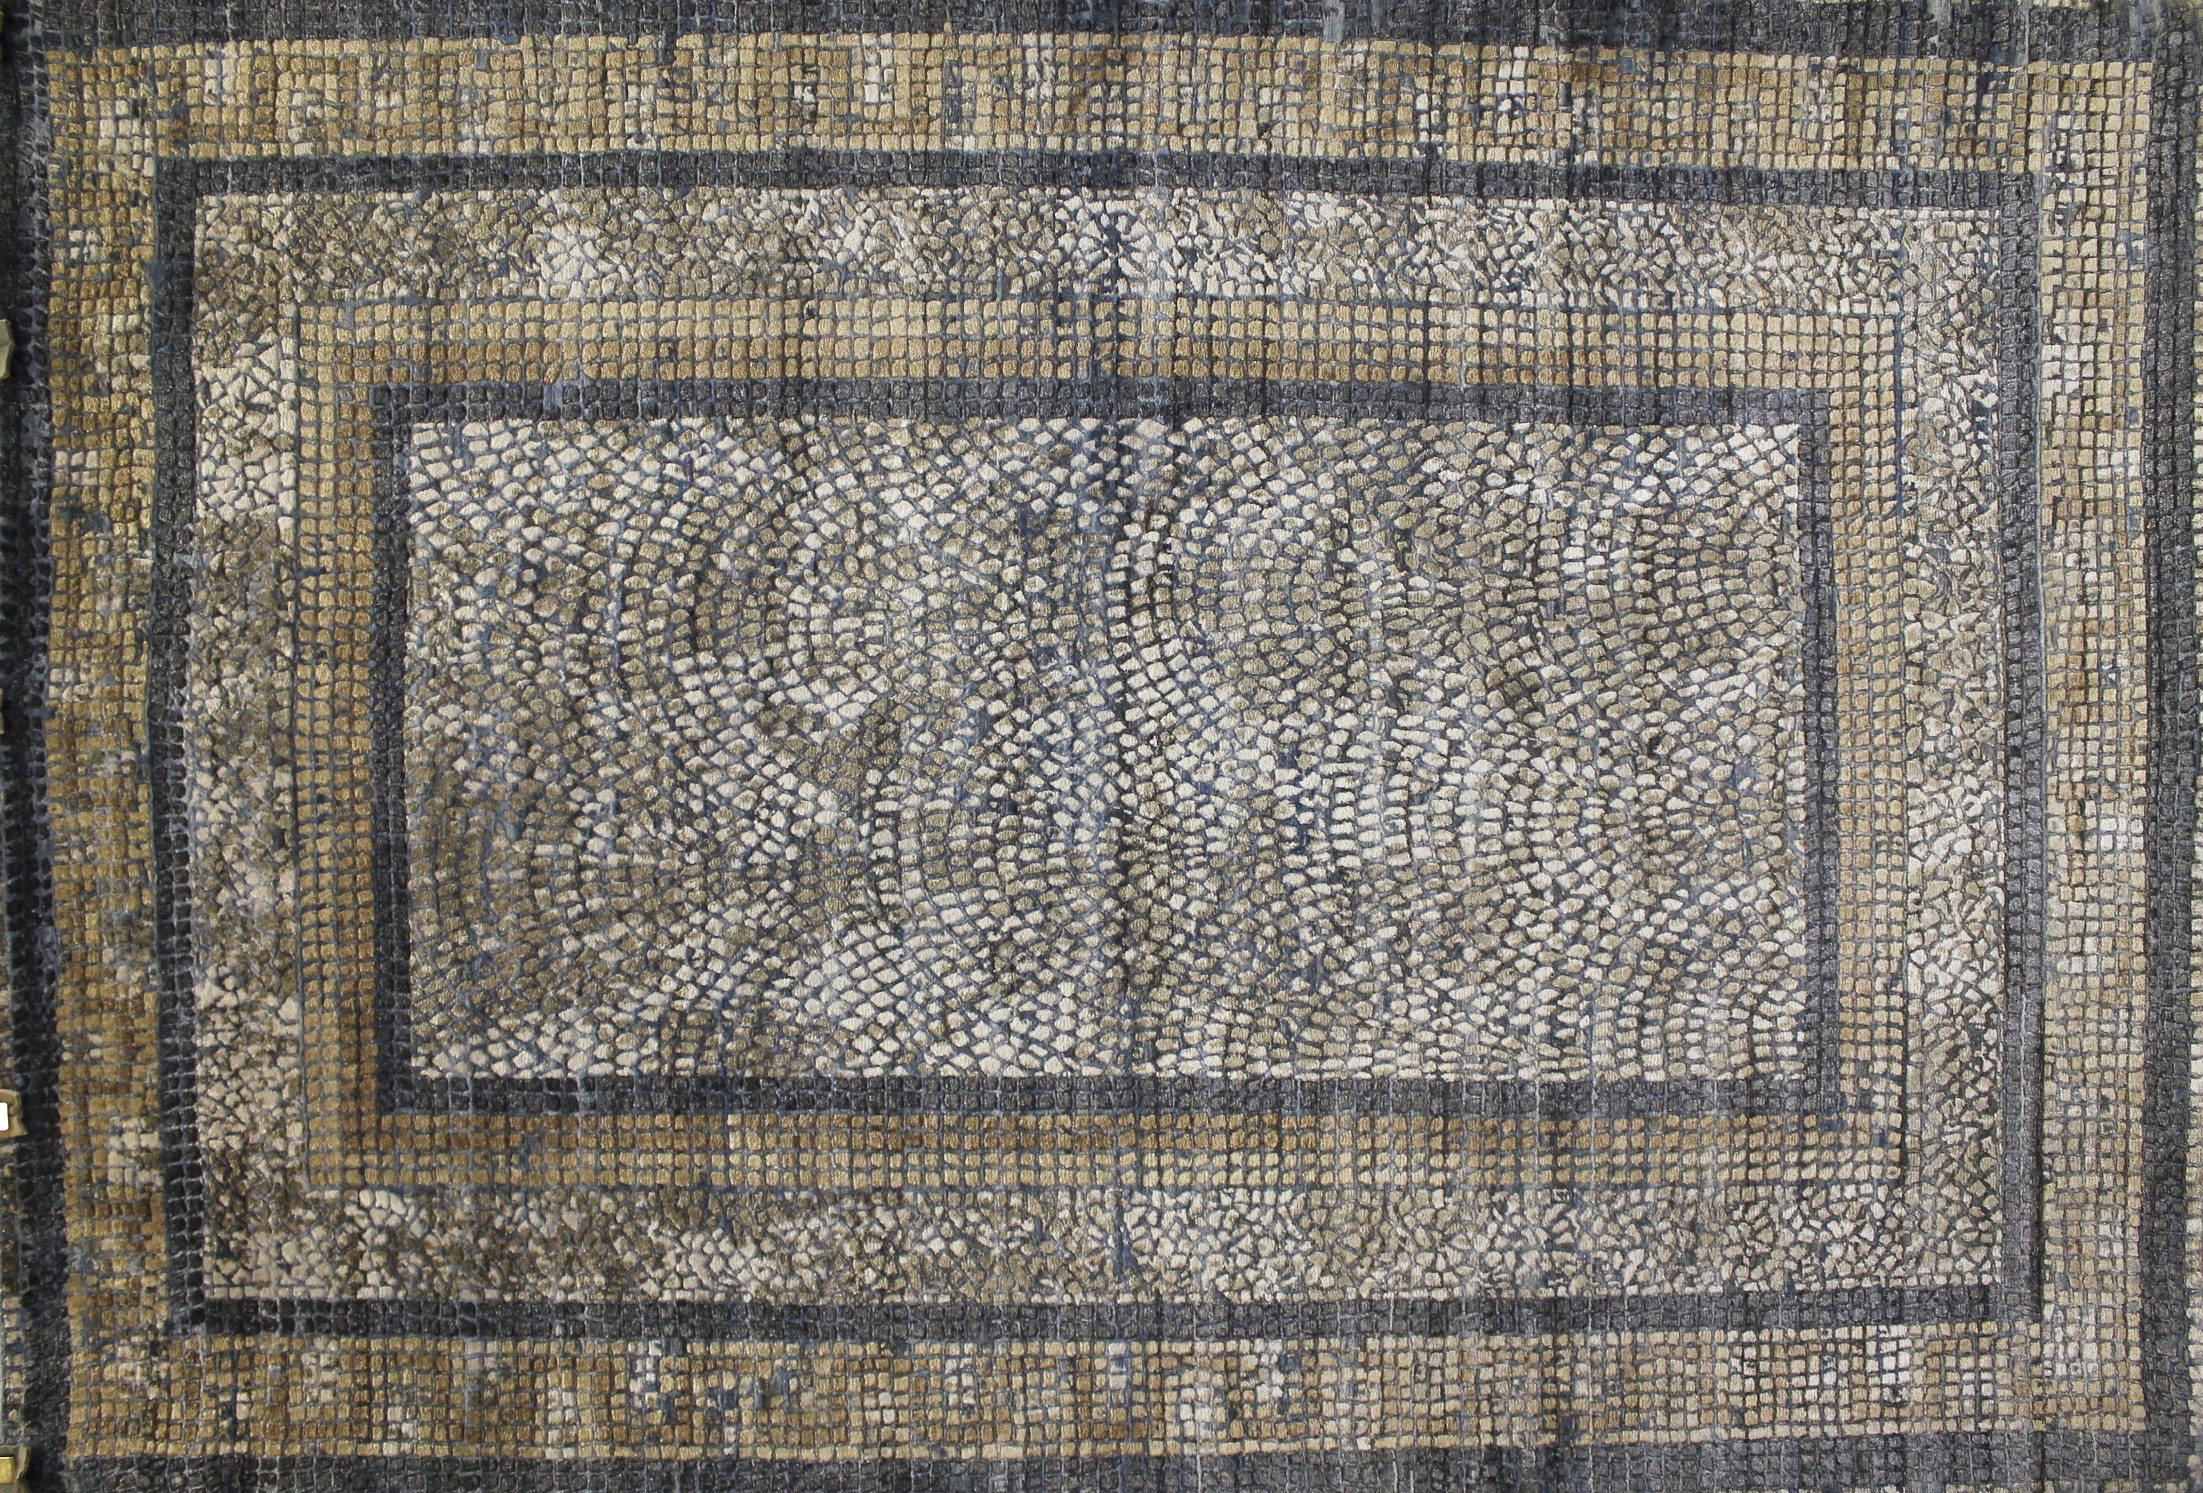 6x9 Contemporary Hand Knotted Wool Area Rug - MR022323